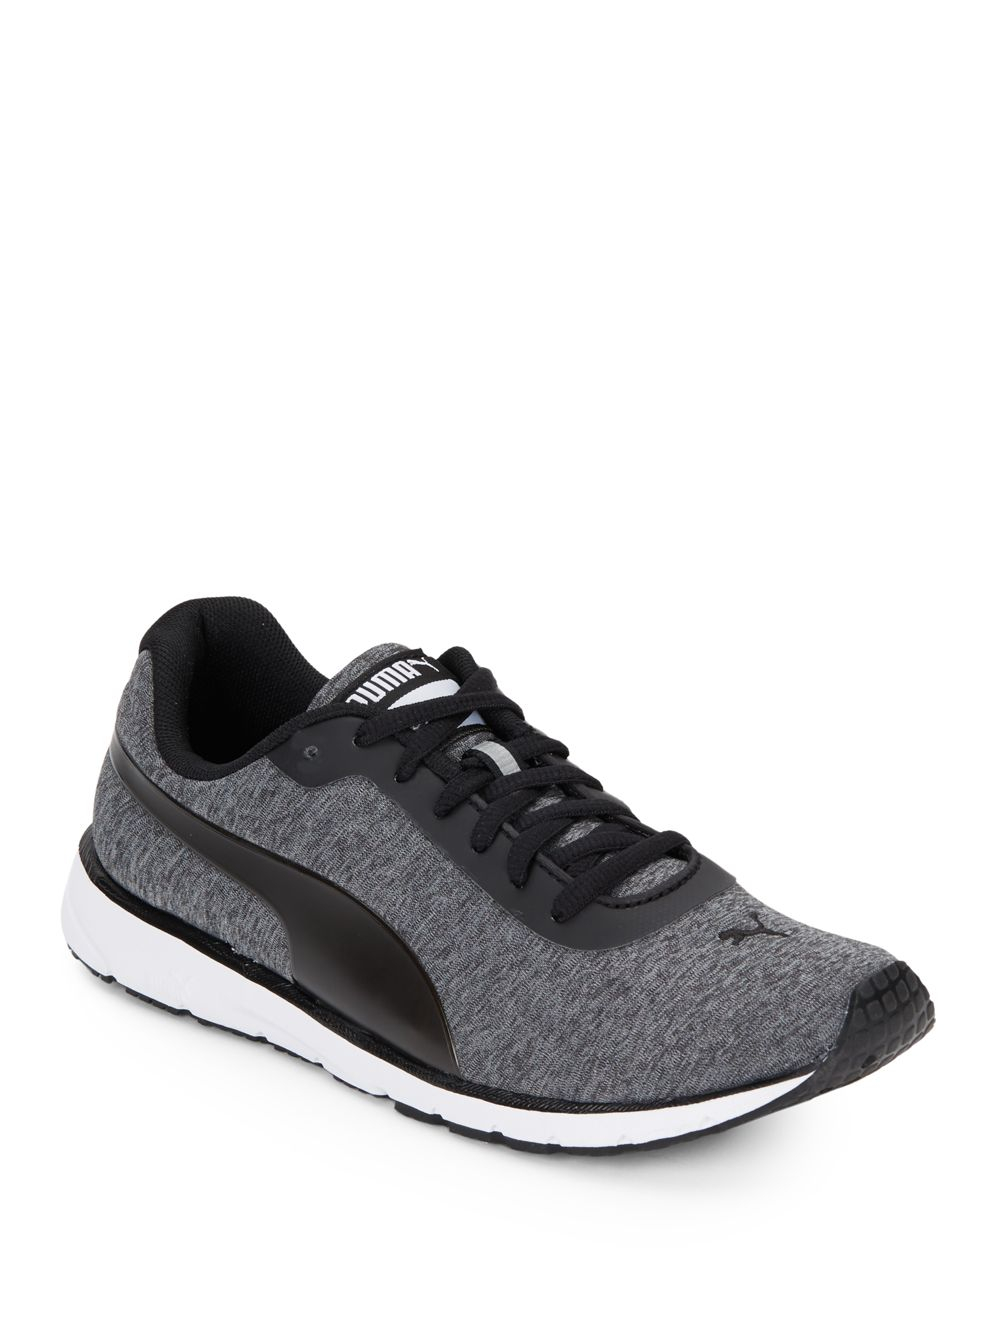 puma narita v3 black lace-up sneakers